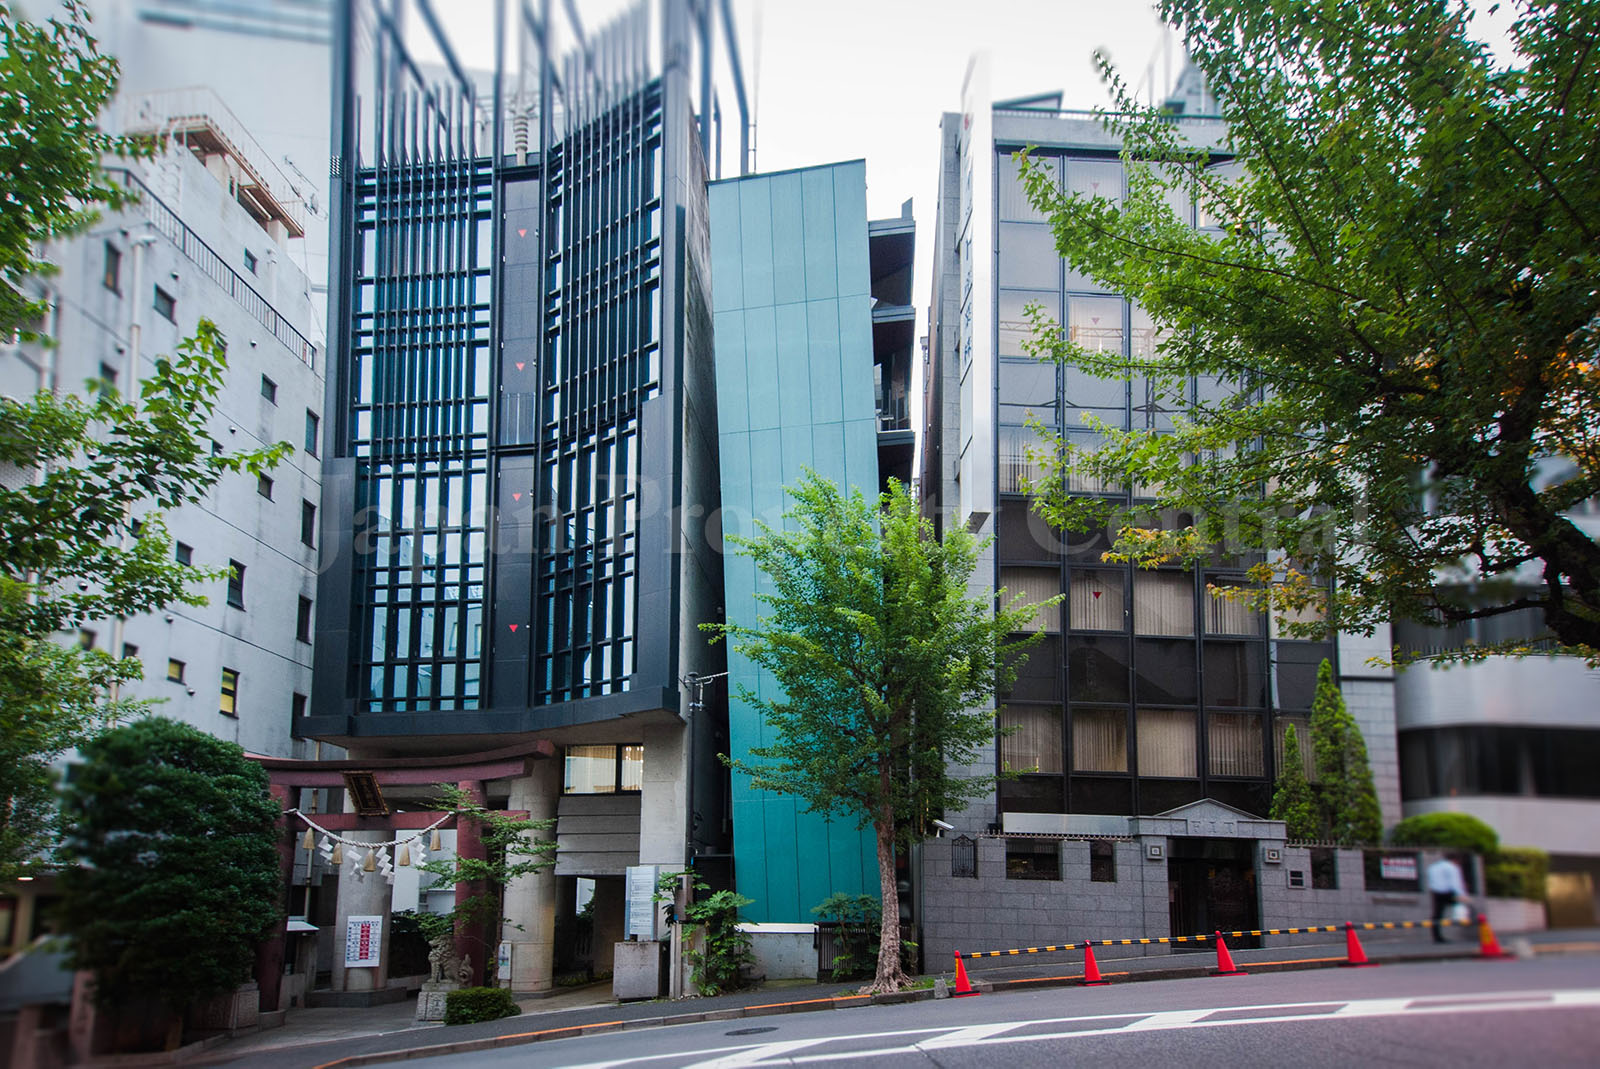 For Sale: 5-storey designer townhouse in downtown Tokyo